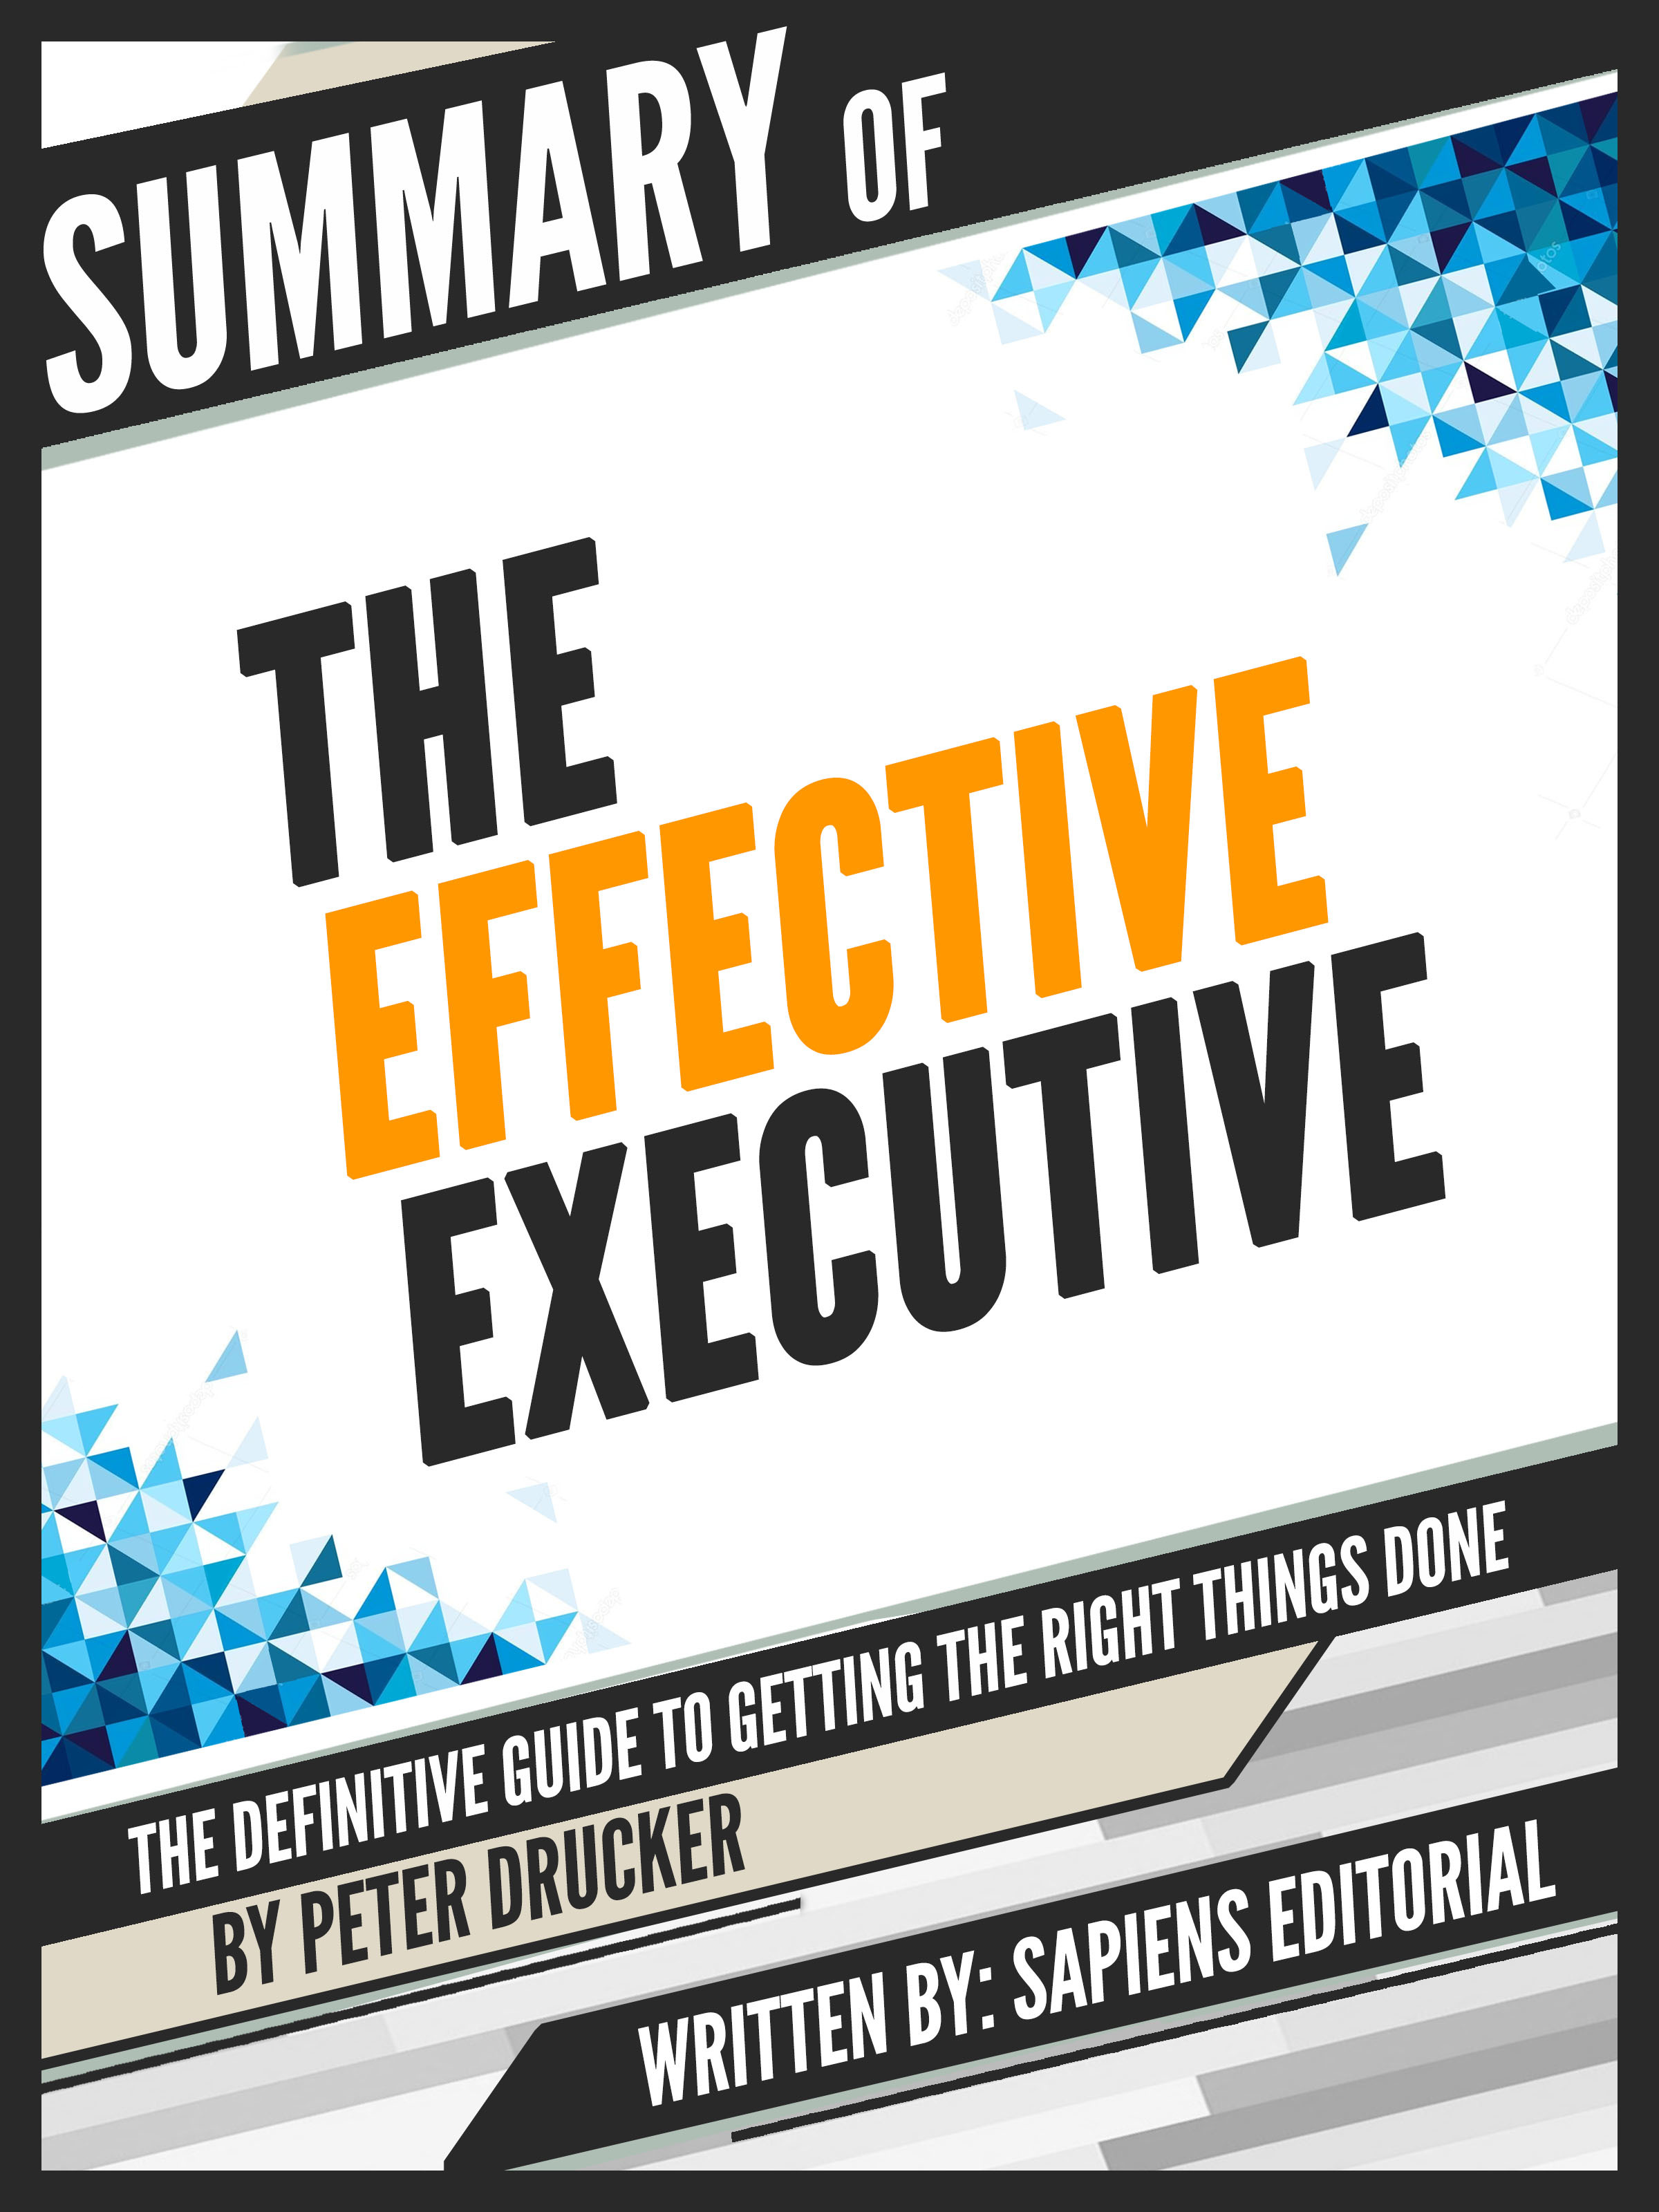 Sapiens Editorial Summary Of The Effective Executive: The Definitive Guide To Getting The Right Things Done - By Peter Drucker daniel brian the definitive guide to berkeley db xml